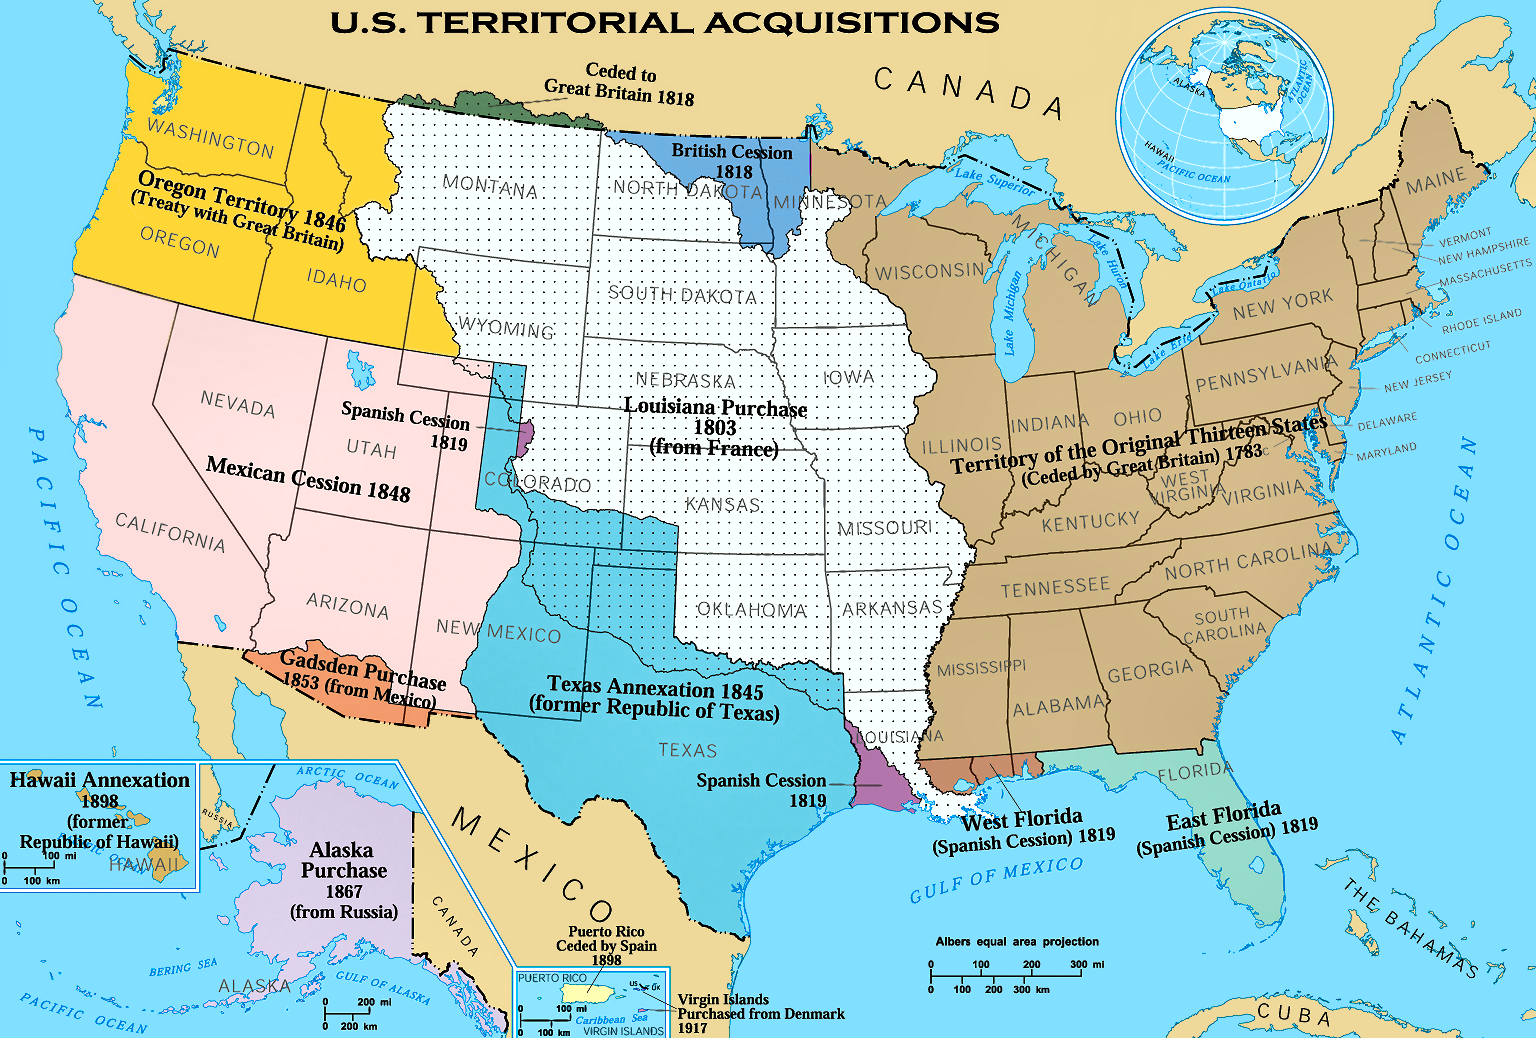 u.s. territorial acquisitions.png